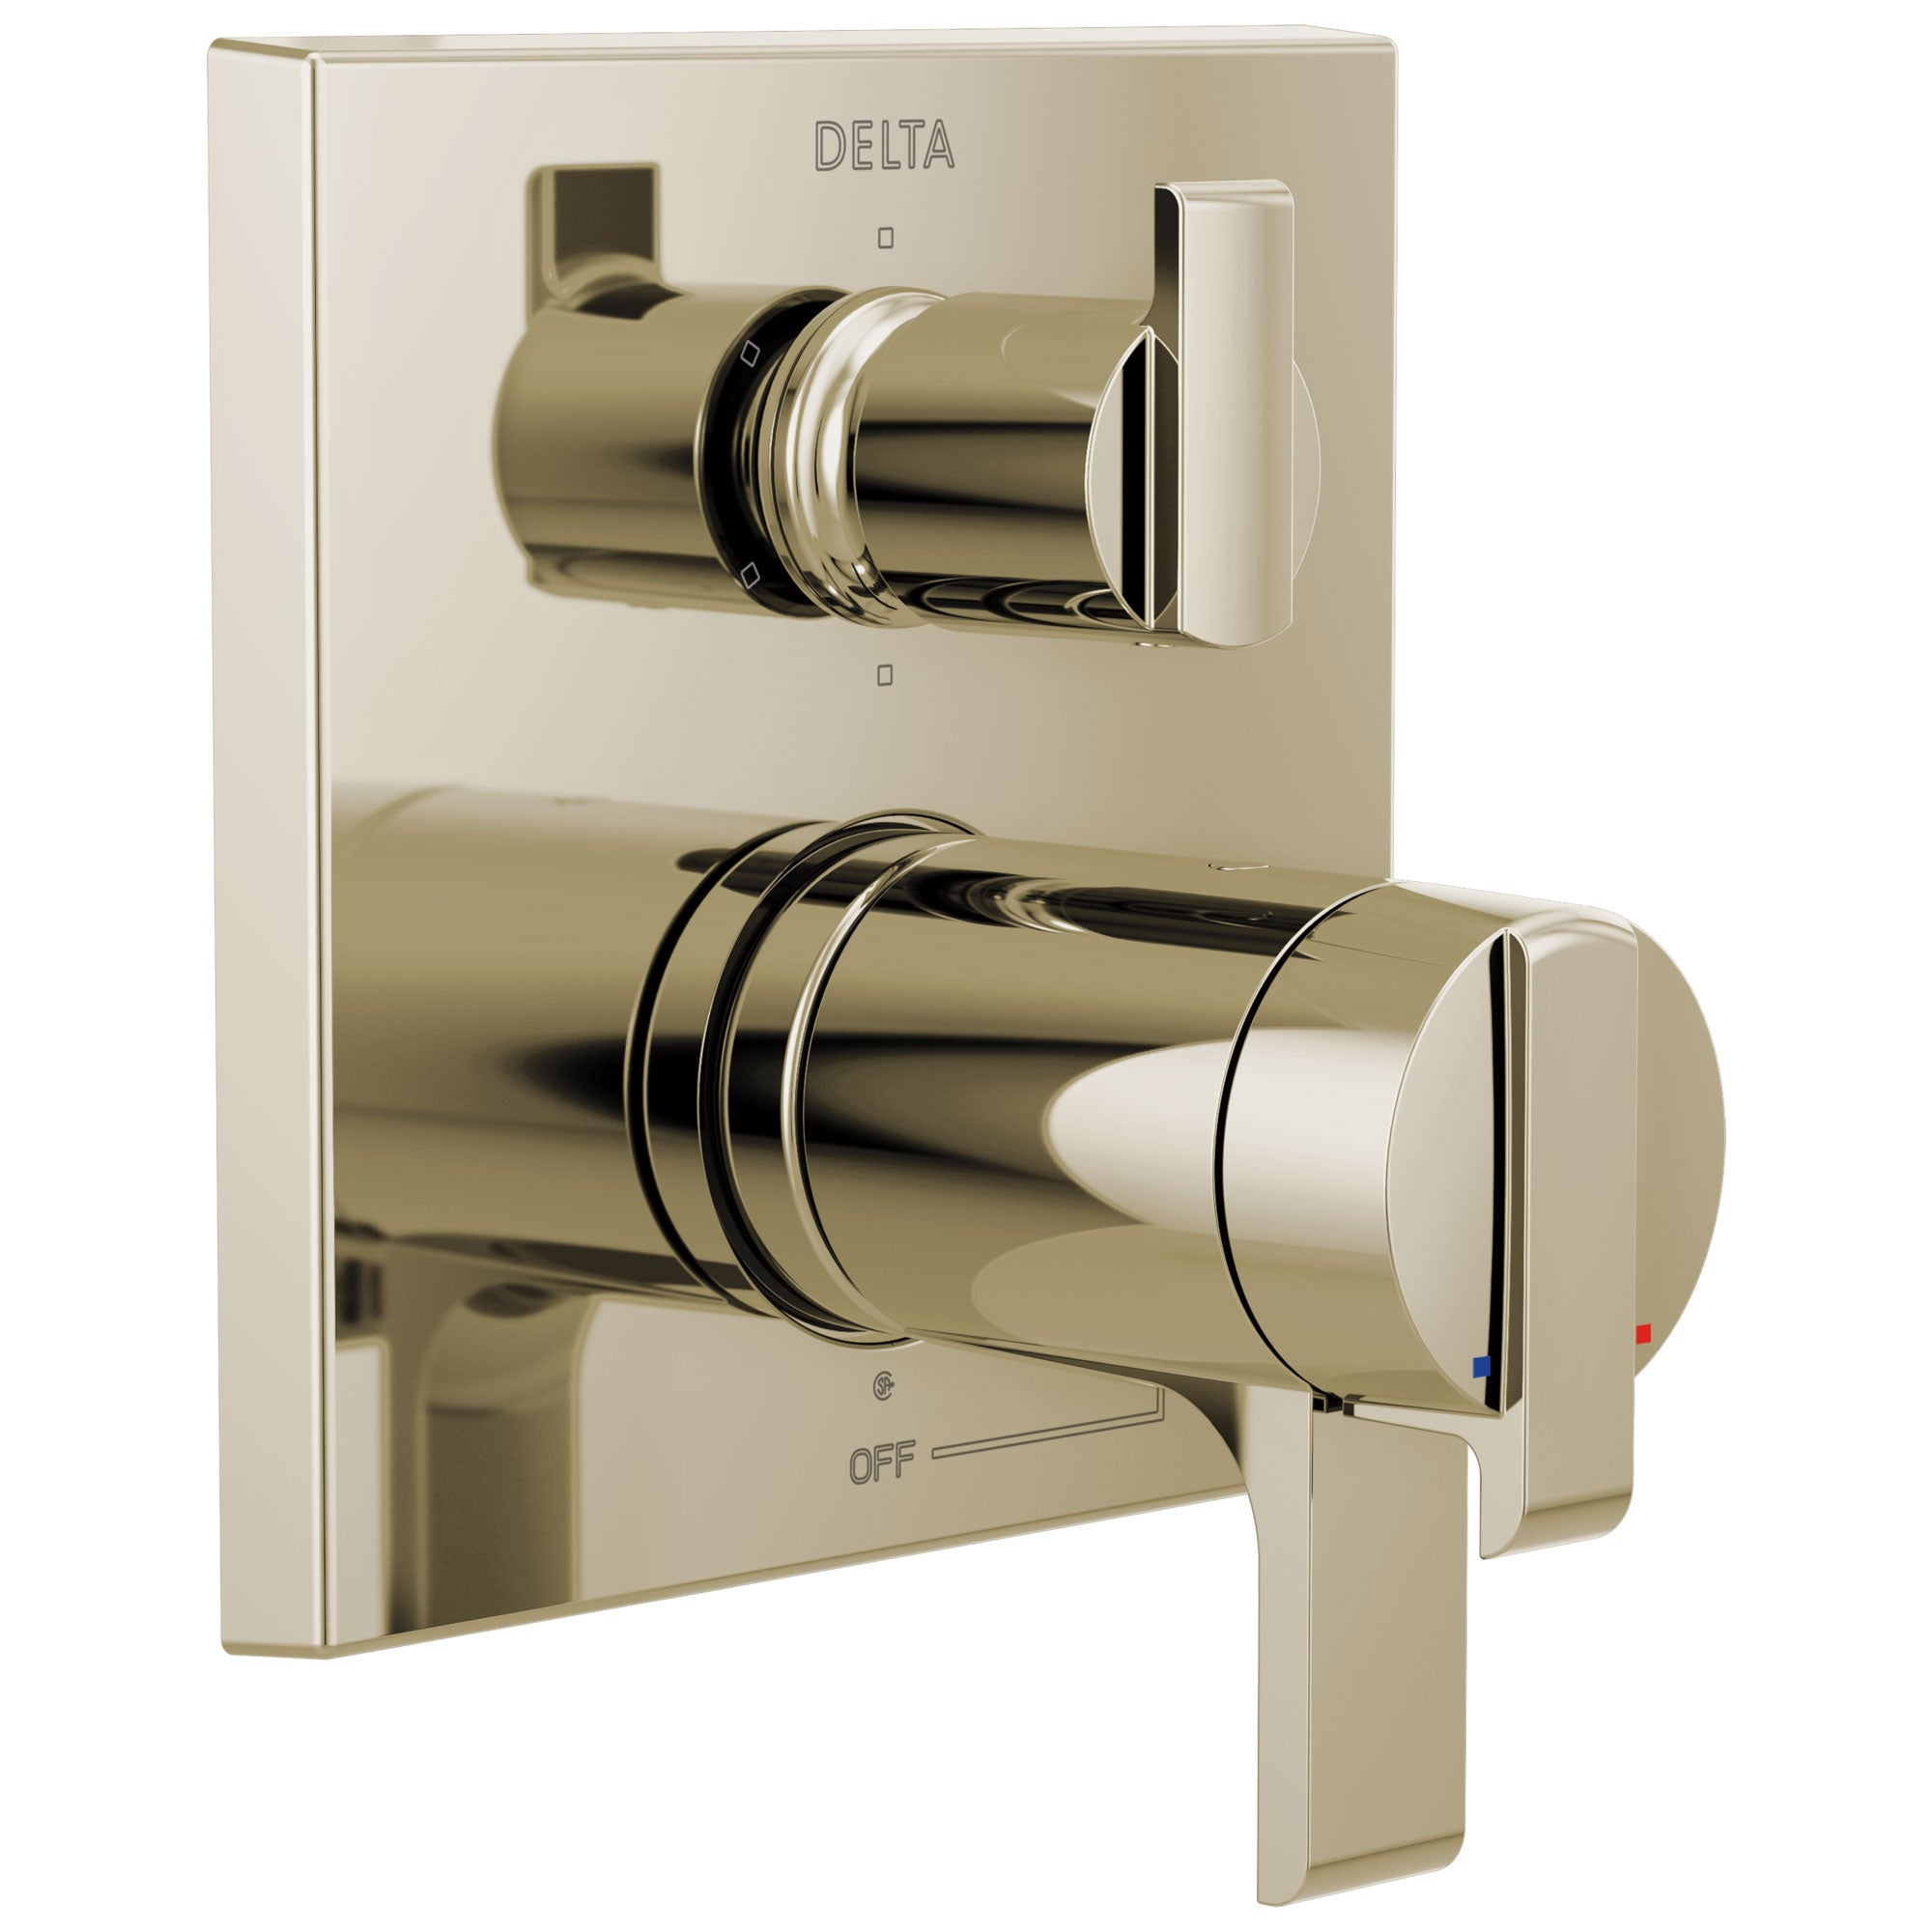 Delta Ara Polished Nickel Finish Modern Thermostatic Shower System Control with 6-Setting Integrated Diverter Includes Rough Valve and Handles D3670V